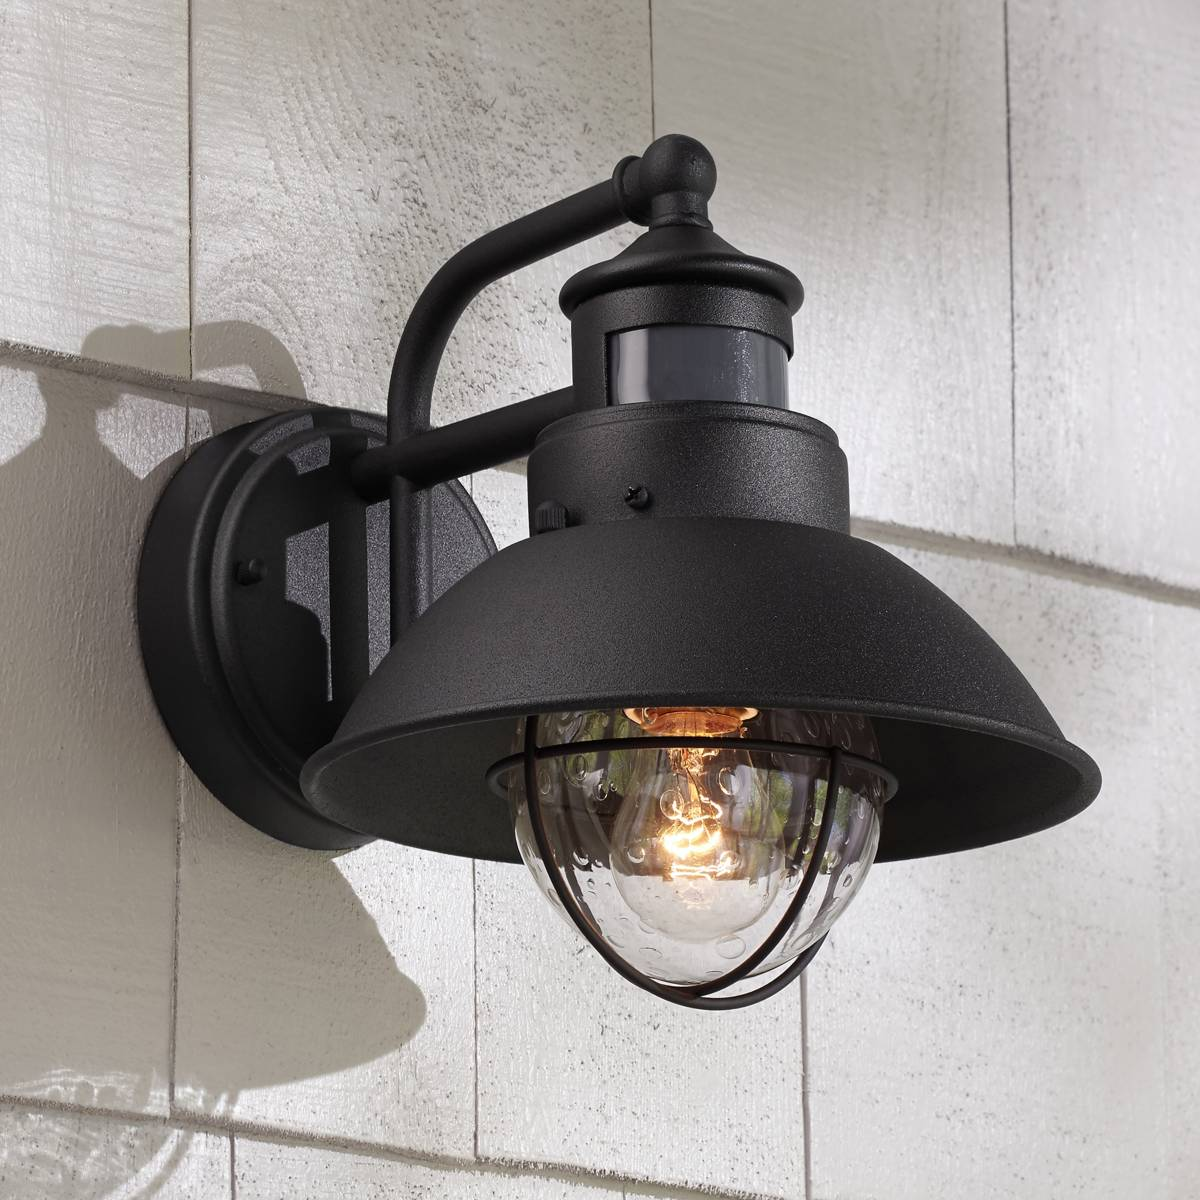 Motion sensor outdoor light fixtures lamps plus